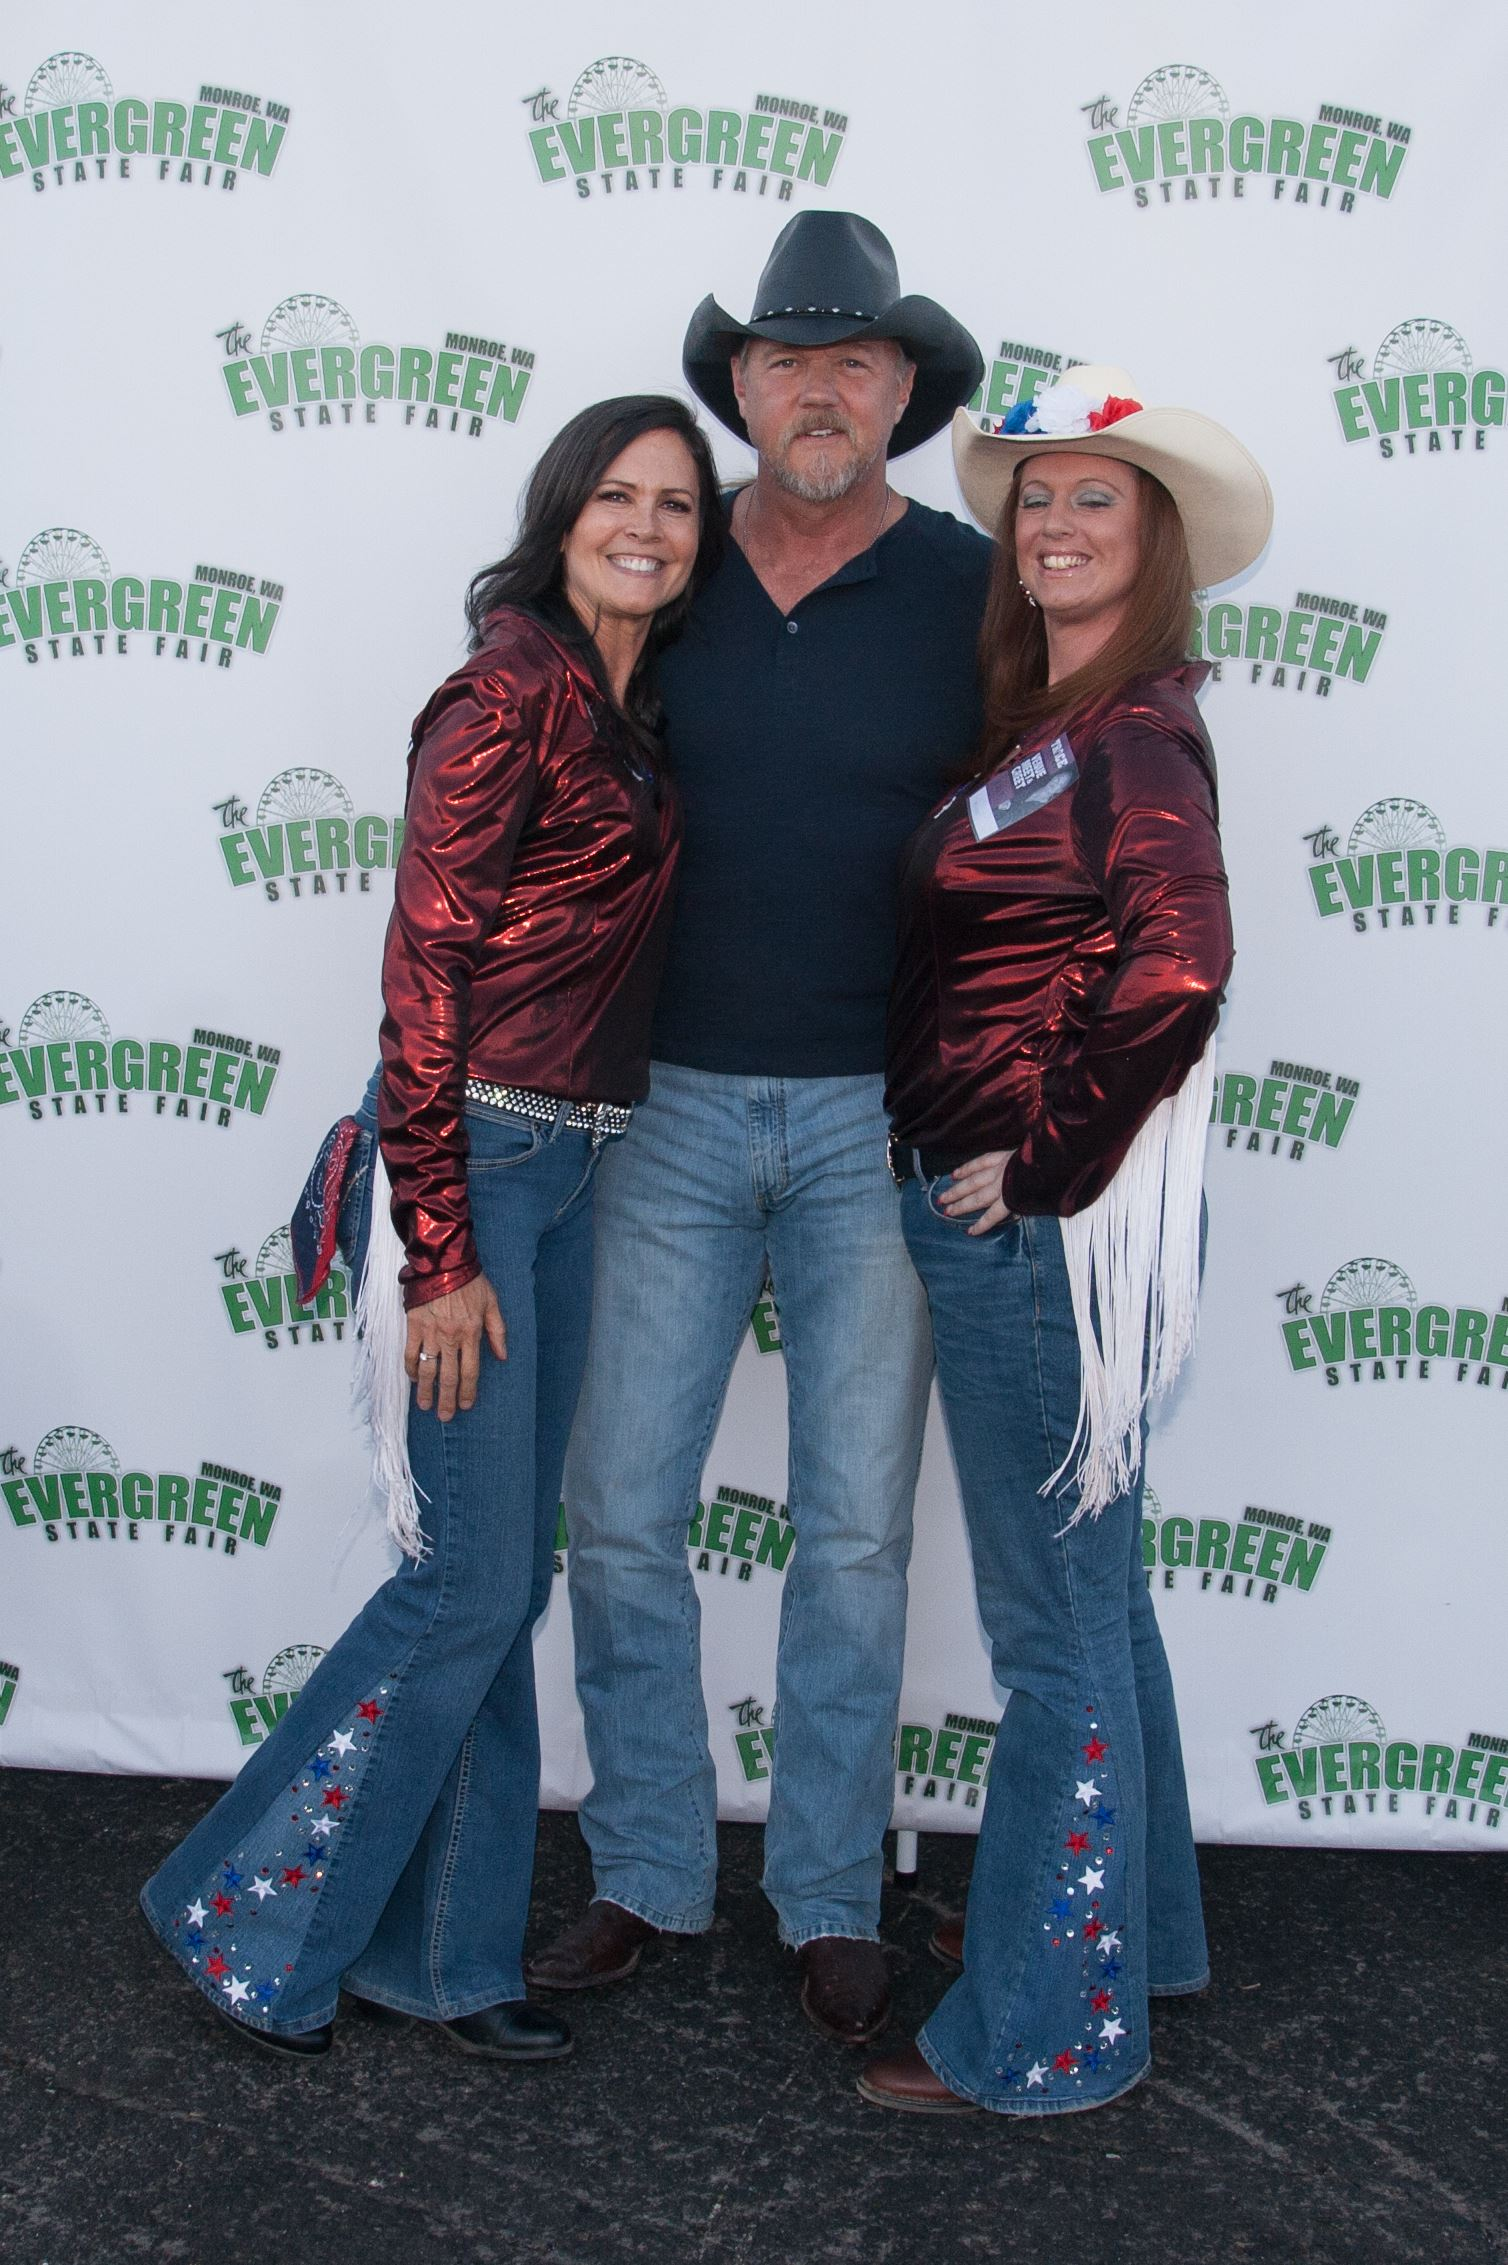 Evergreen state fairgrounds wa official website traceadkins22 kristyandbryce Choice Image